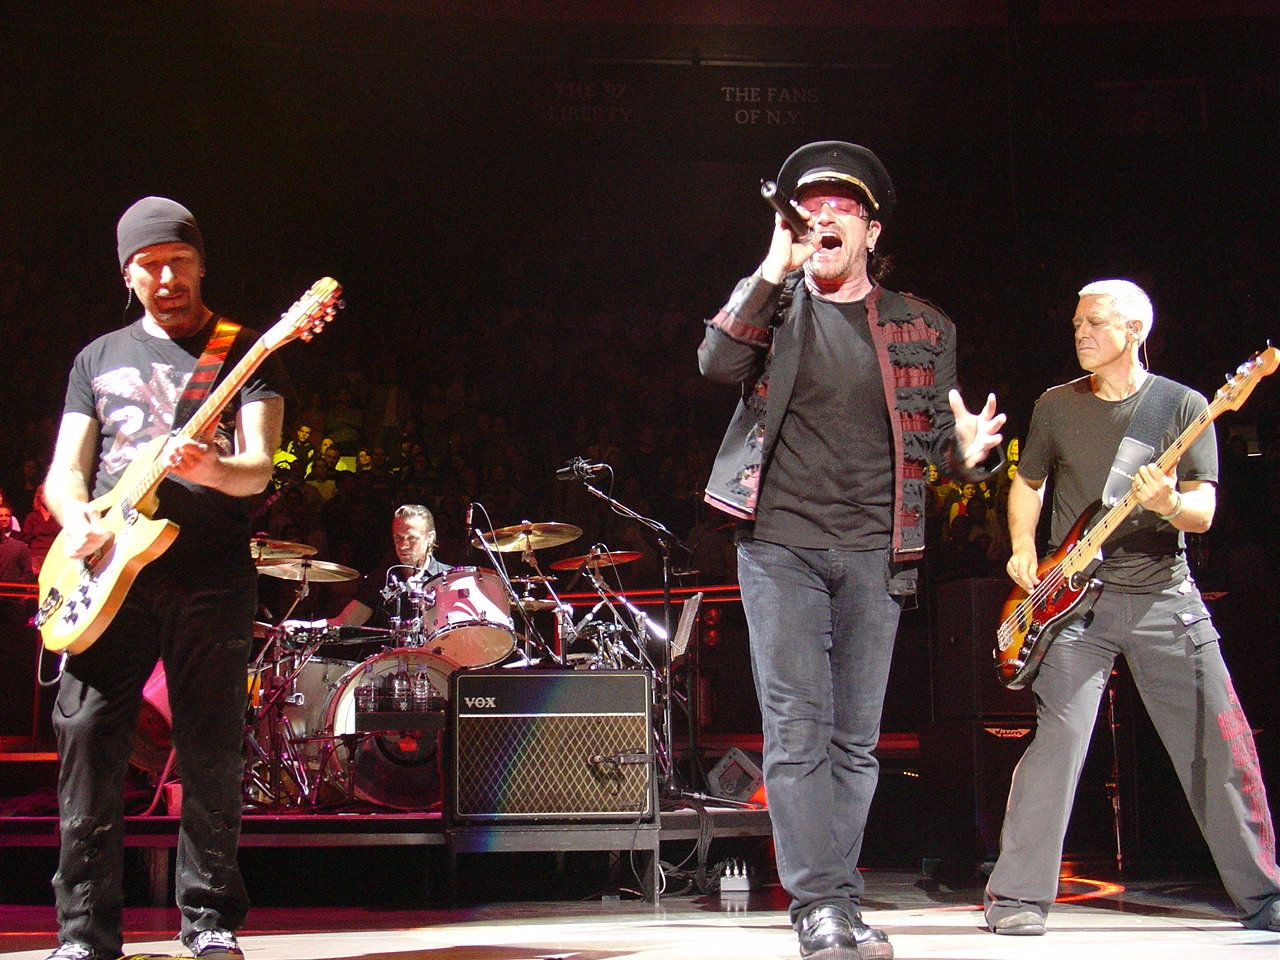 U2 performing at Madison Square Garden in 2005  Image © Wikimedia Commons